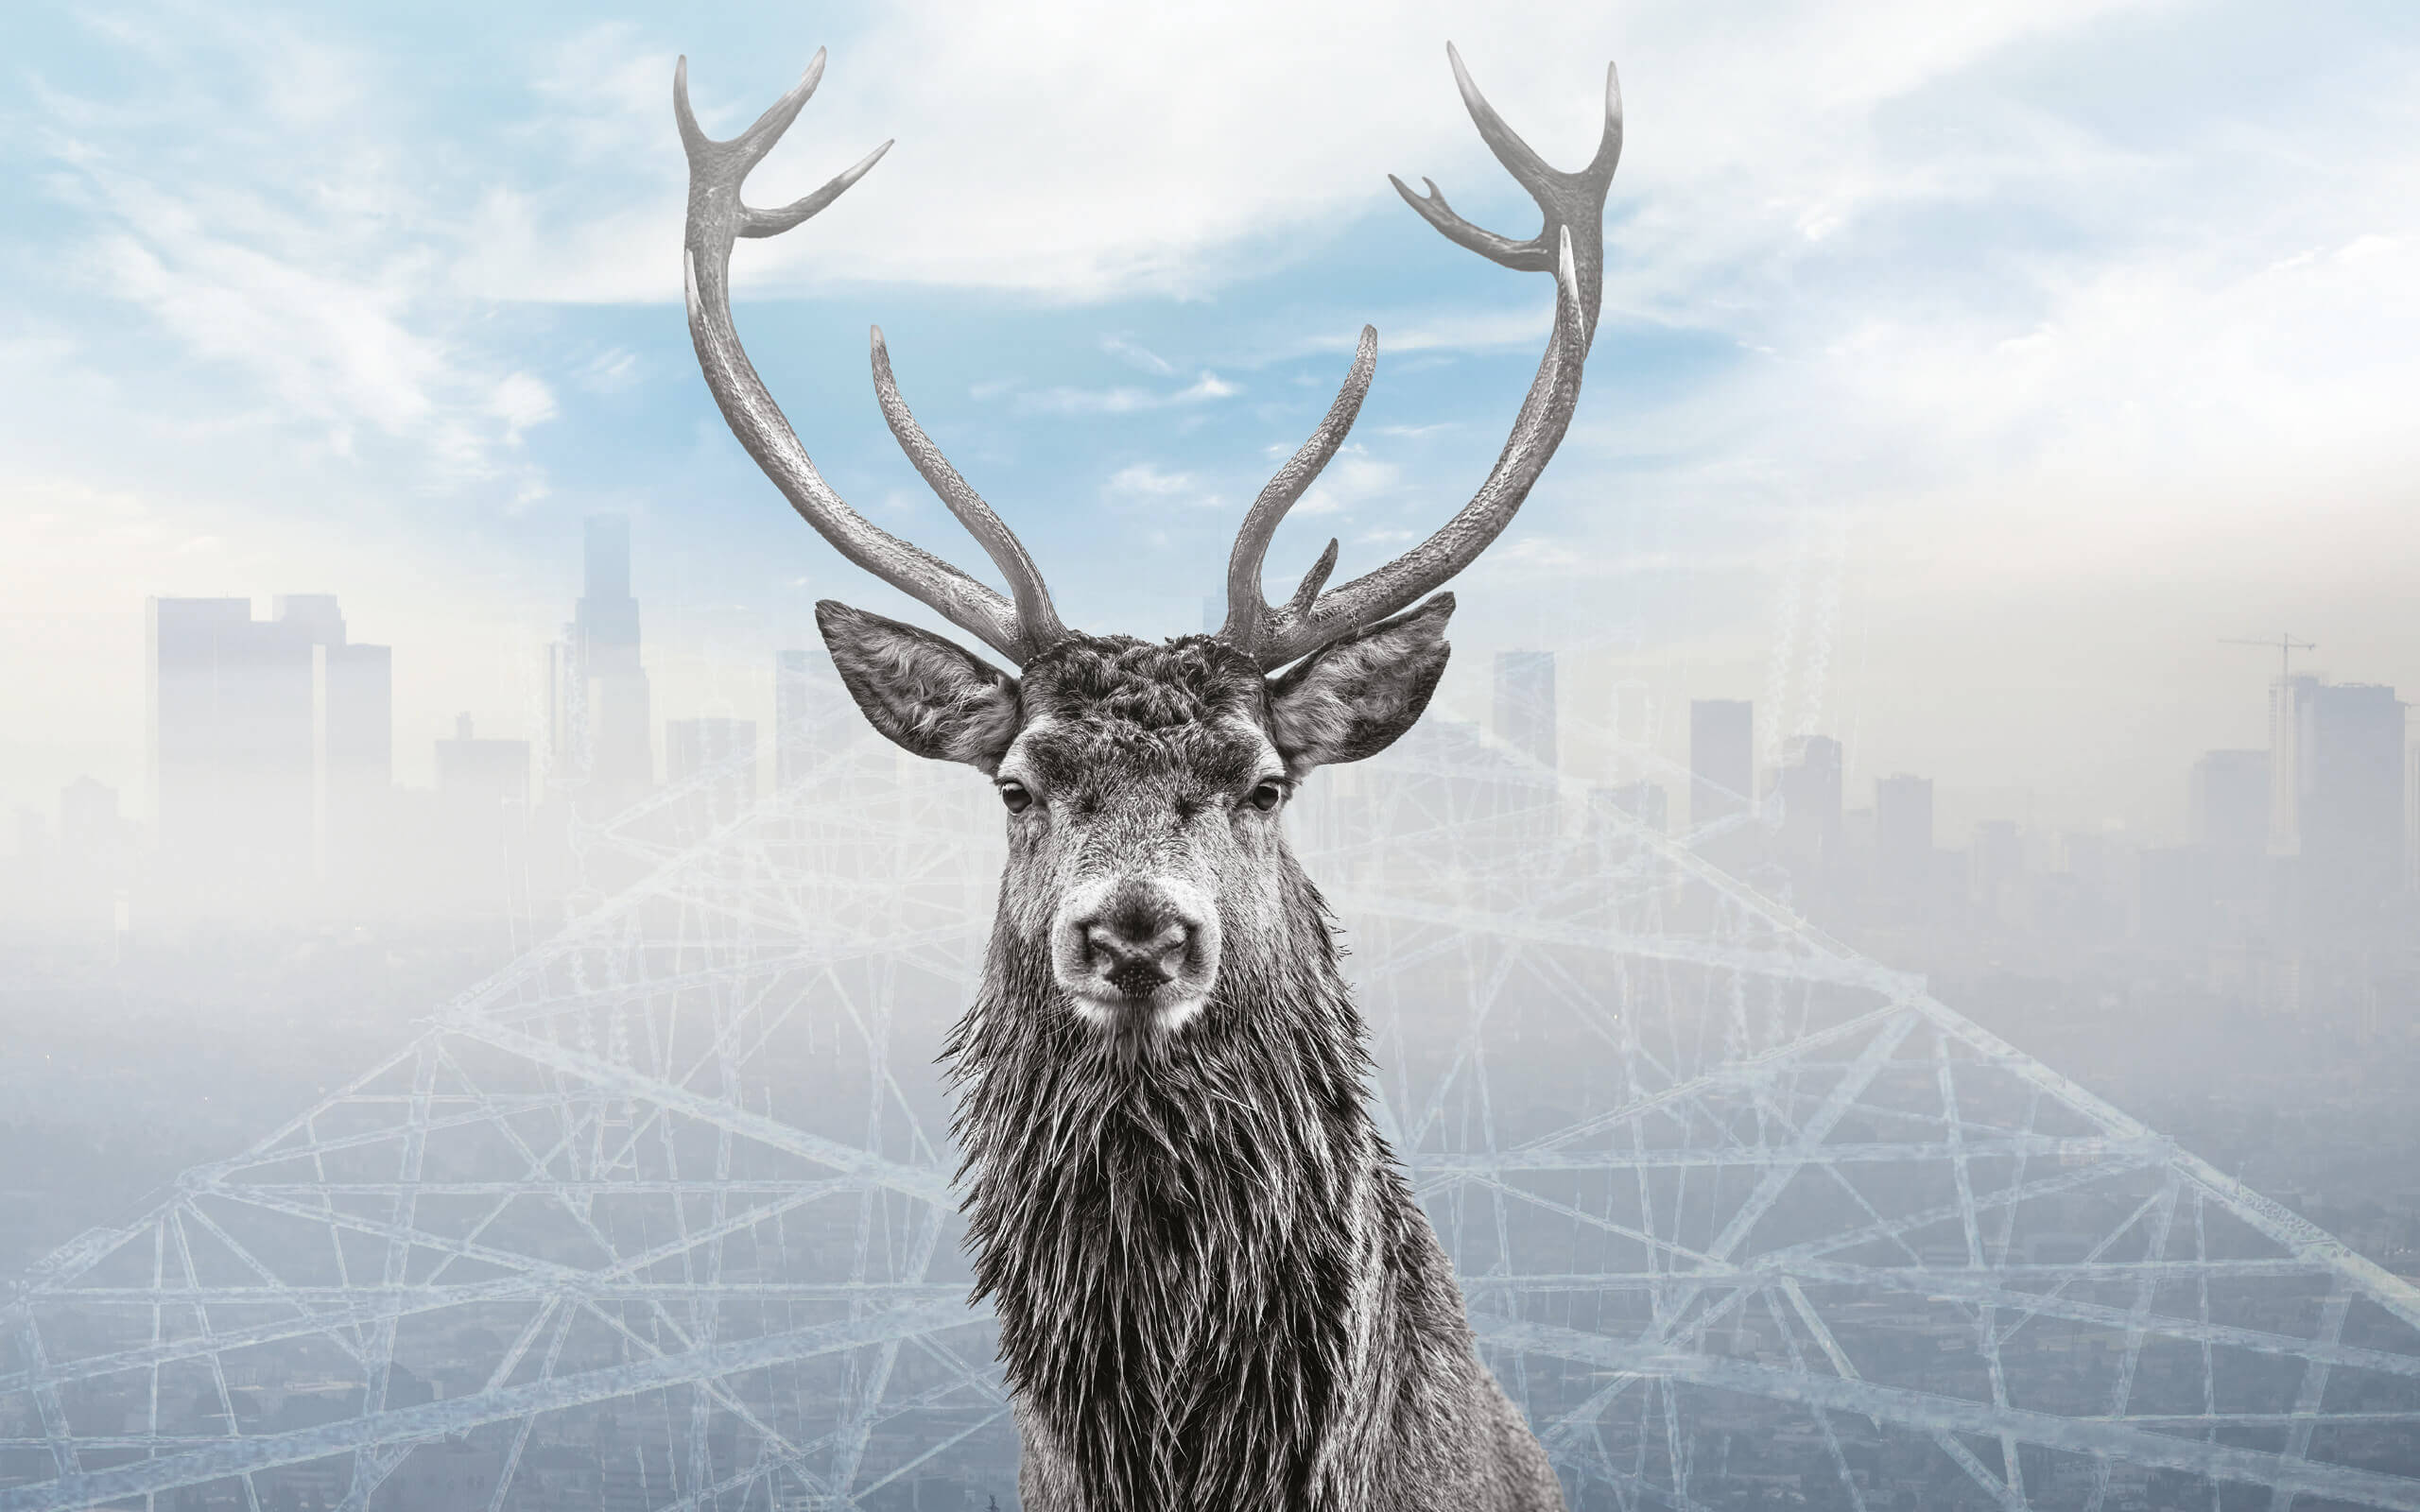 A reindeer with a foggy background and cityscape in the distance